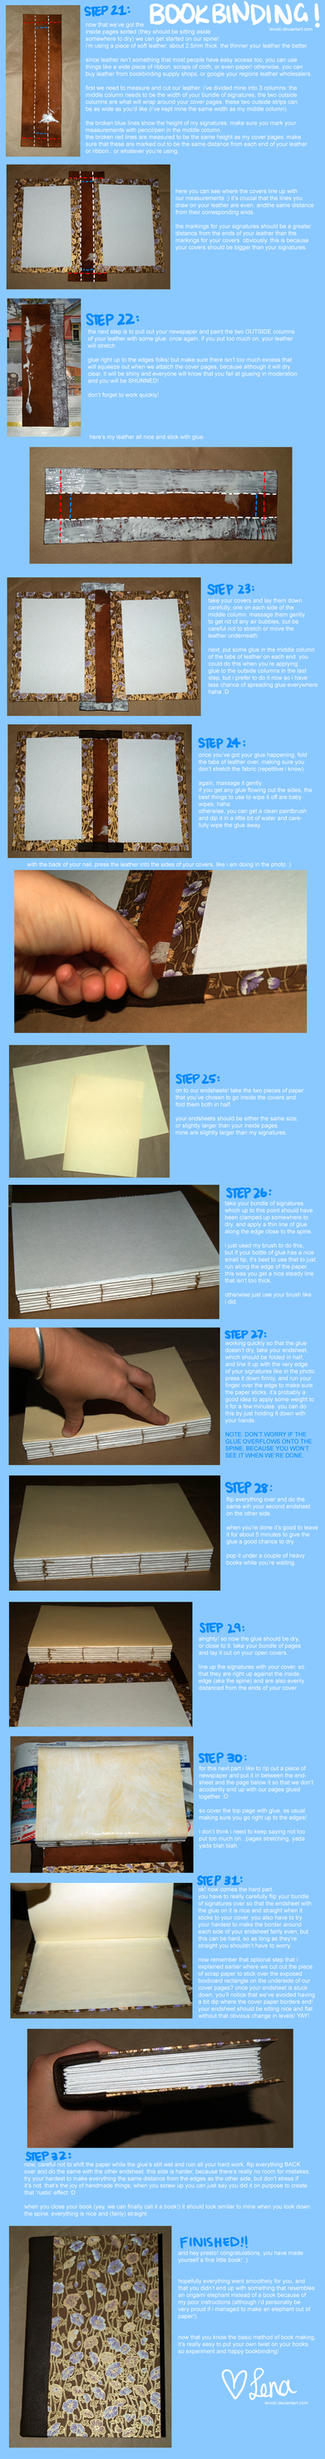 BOOKBINDING TUTORIAL part II by lenoki